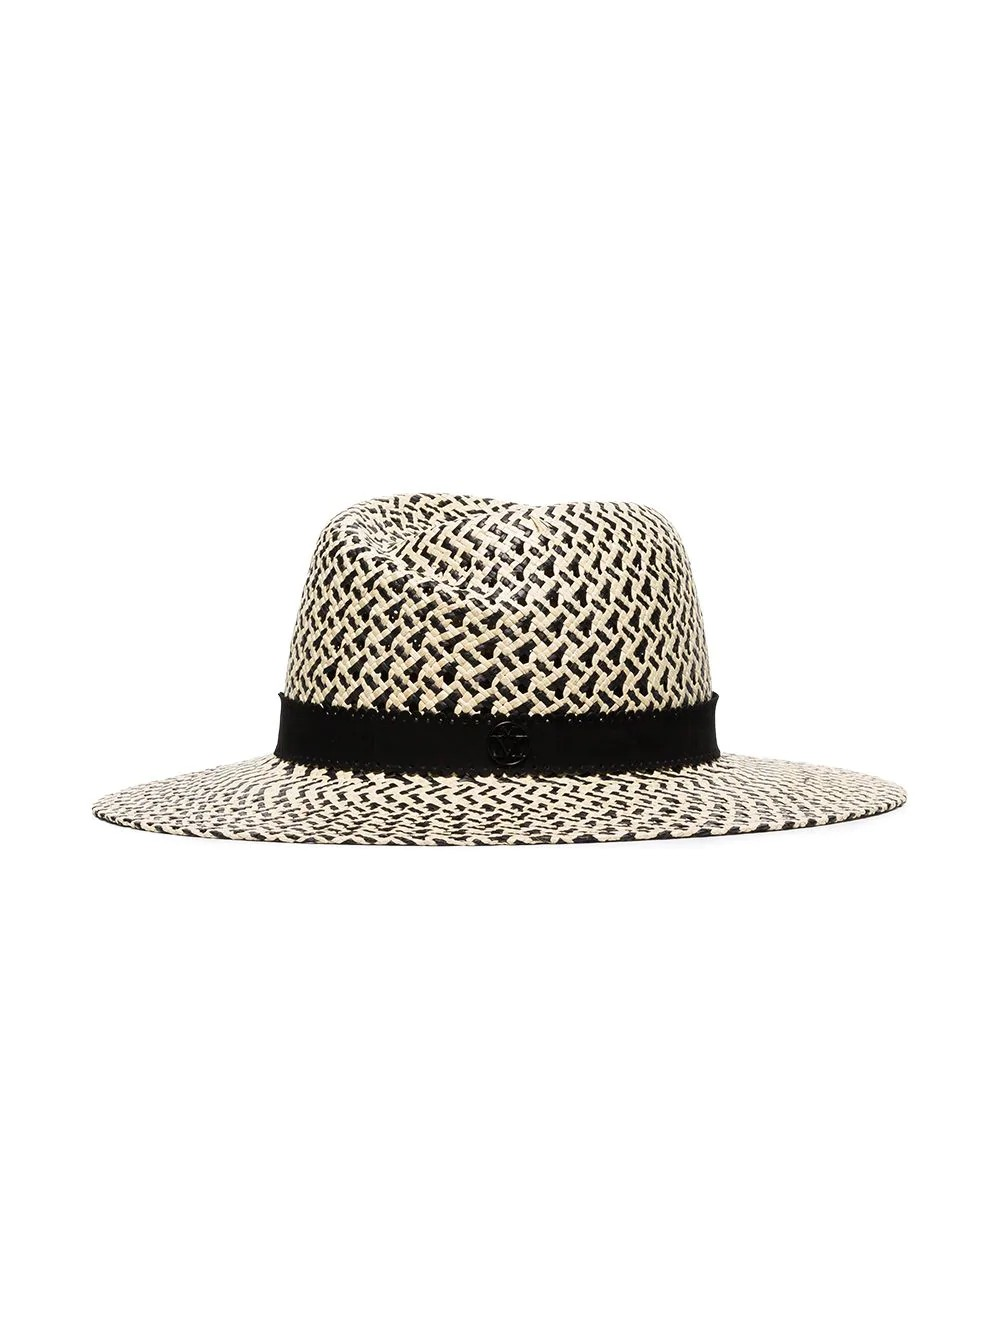 VIRGINIE HAT 20PS BICOLOR STRAW